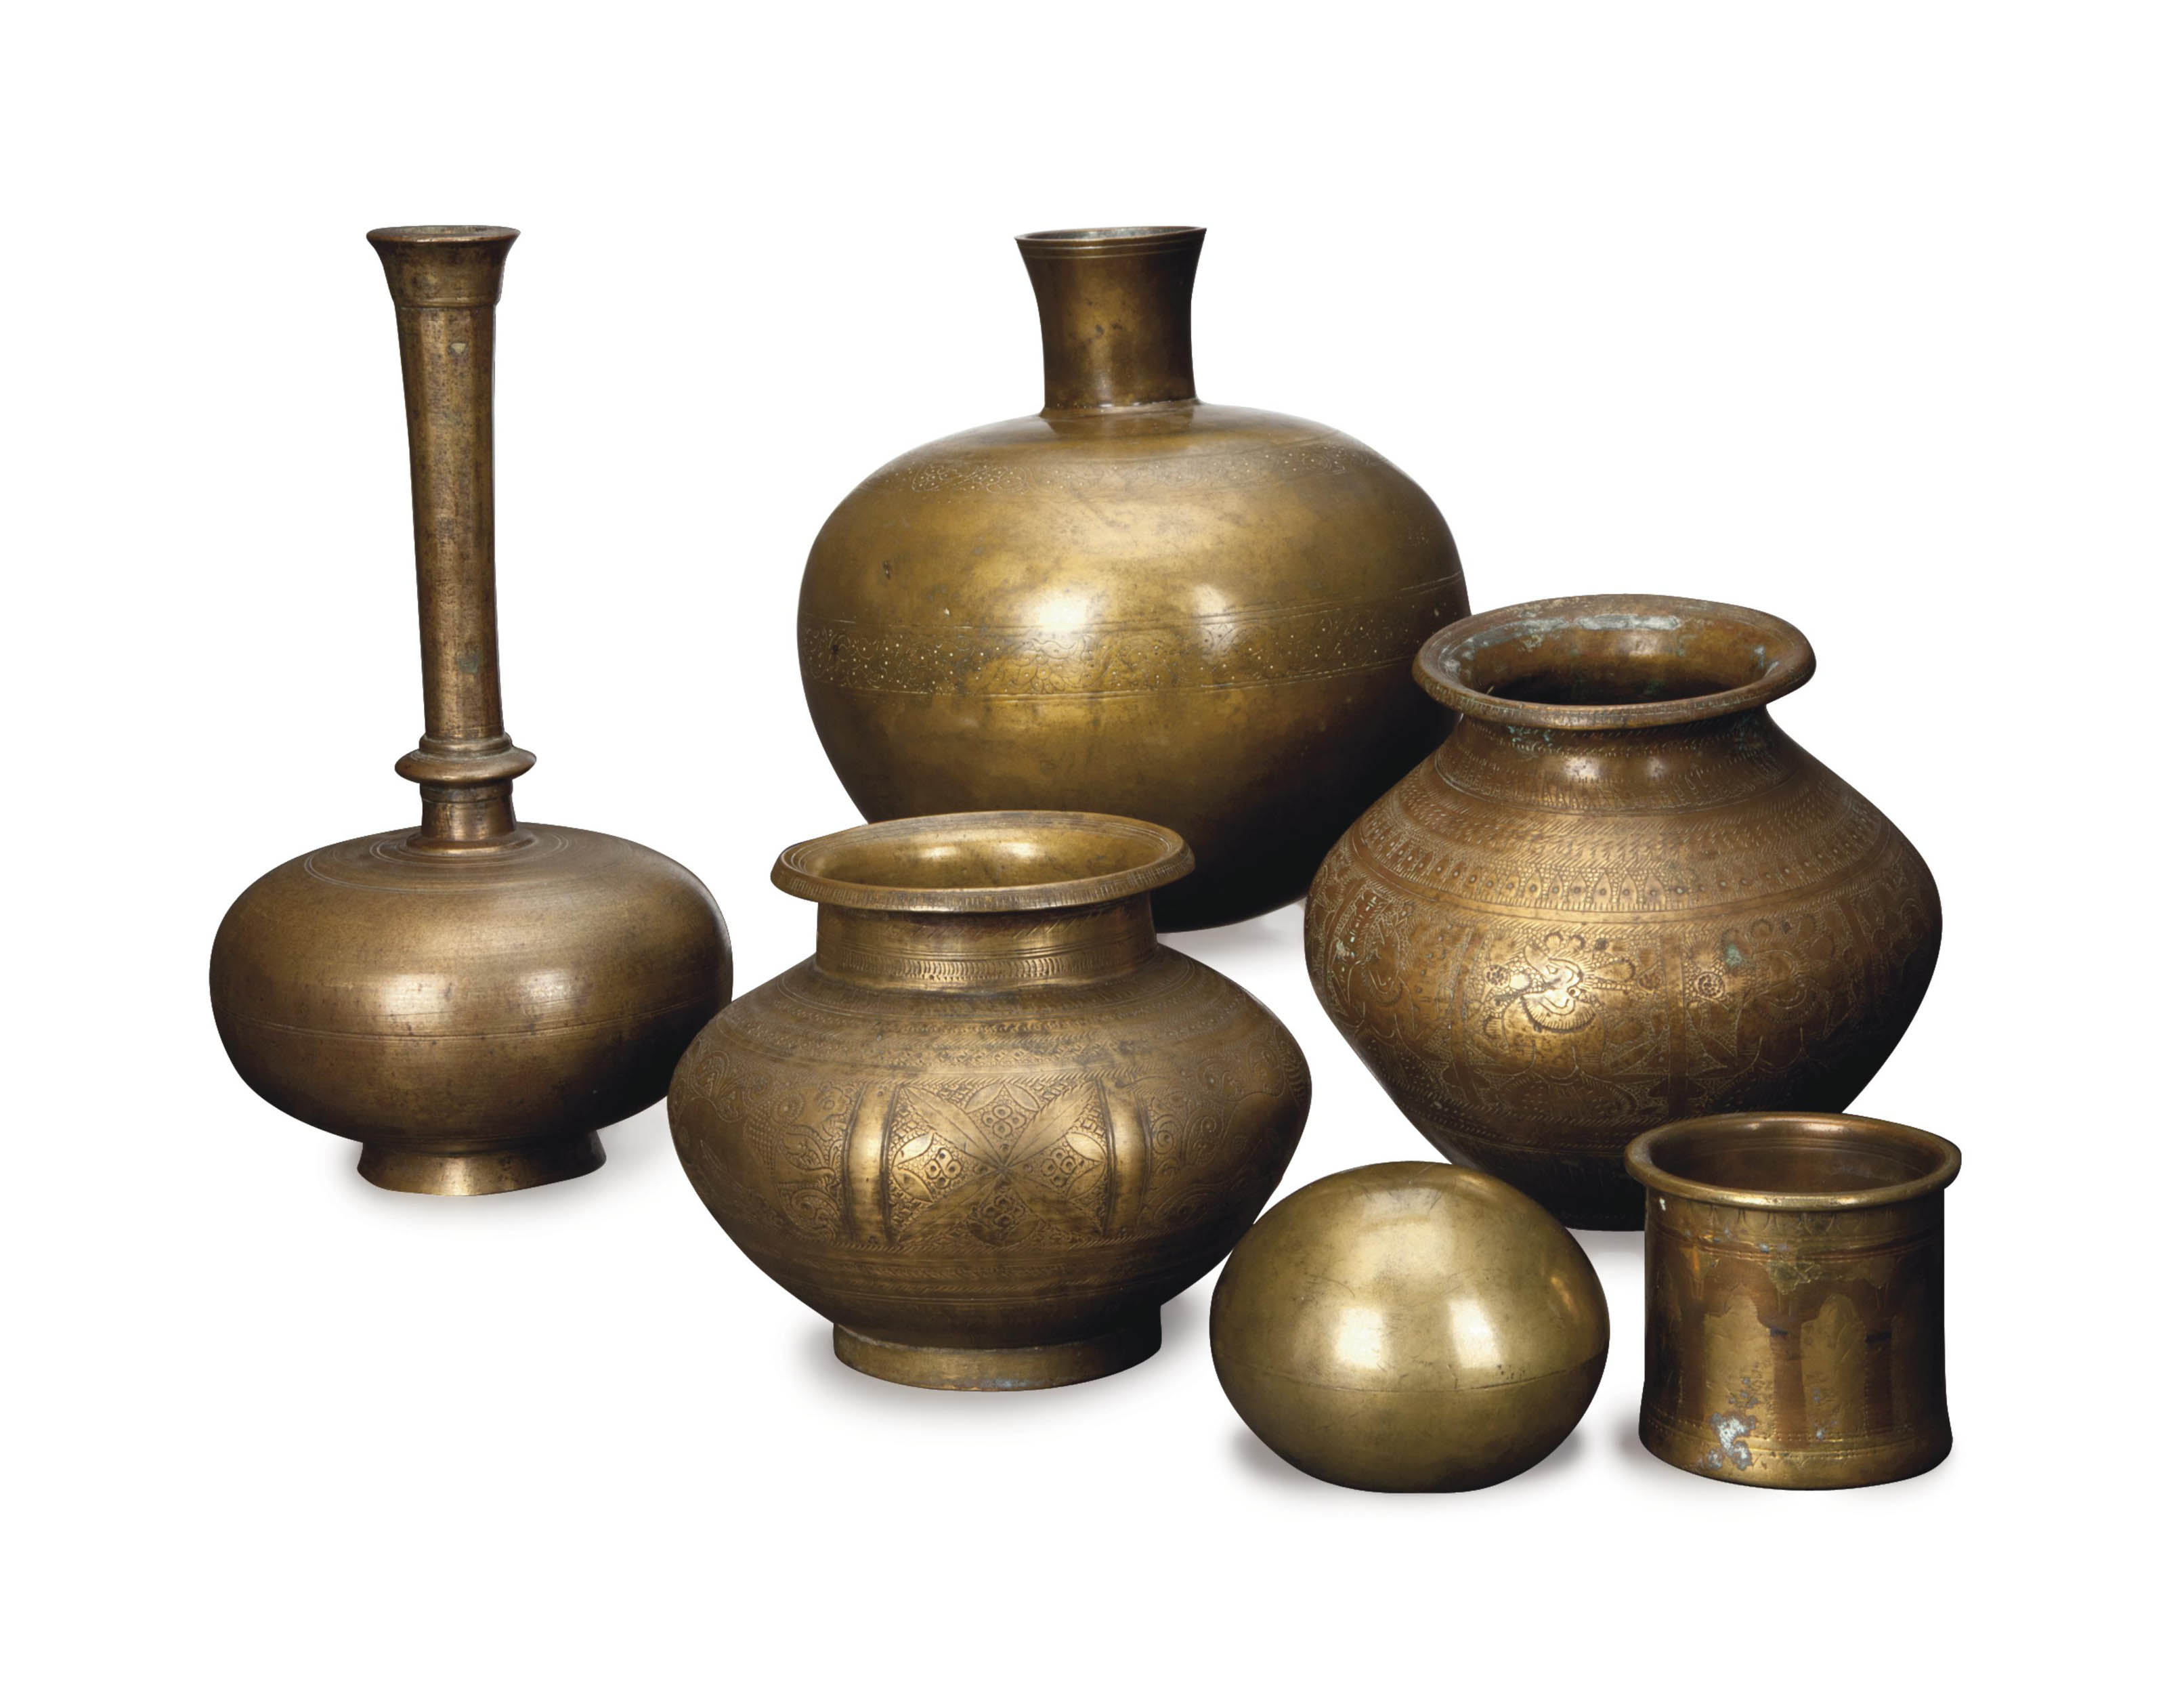 A GROUP OF INDIAN METALWARE OBJECTS AND VESSELS,